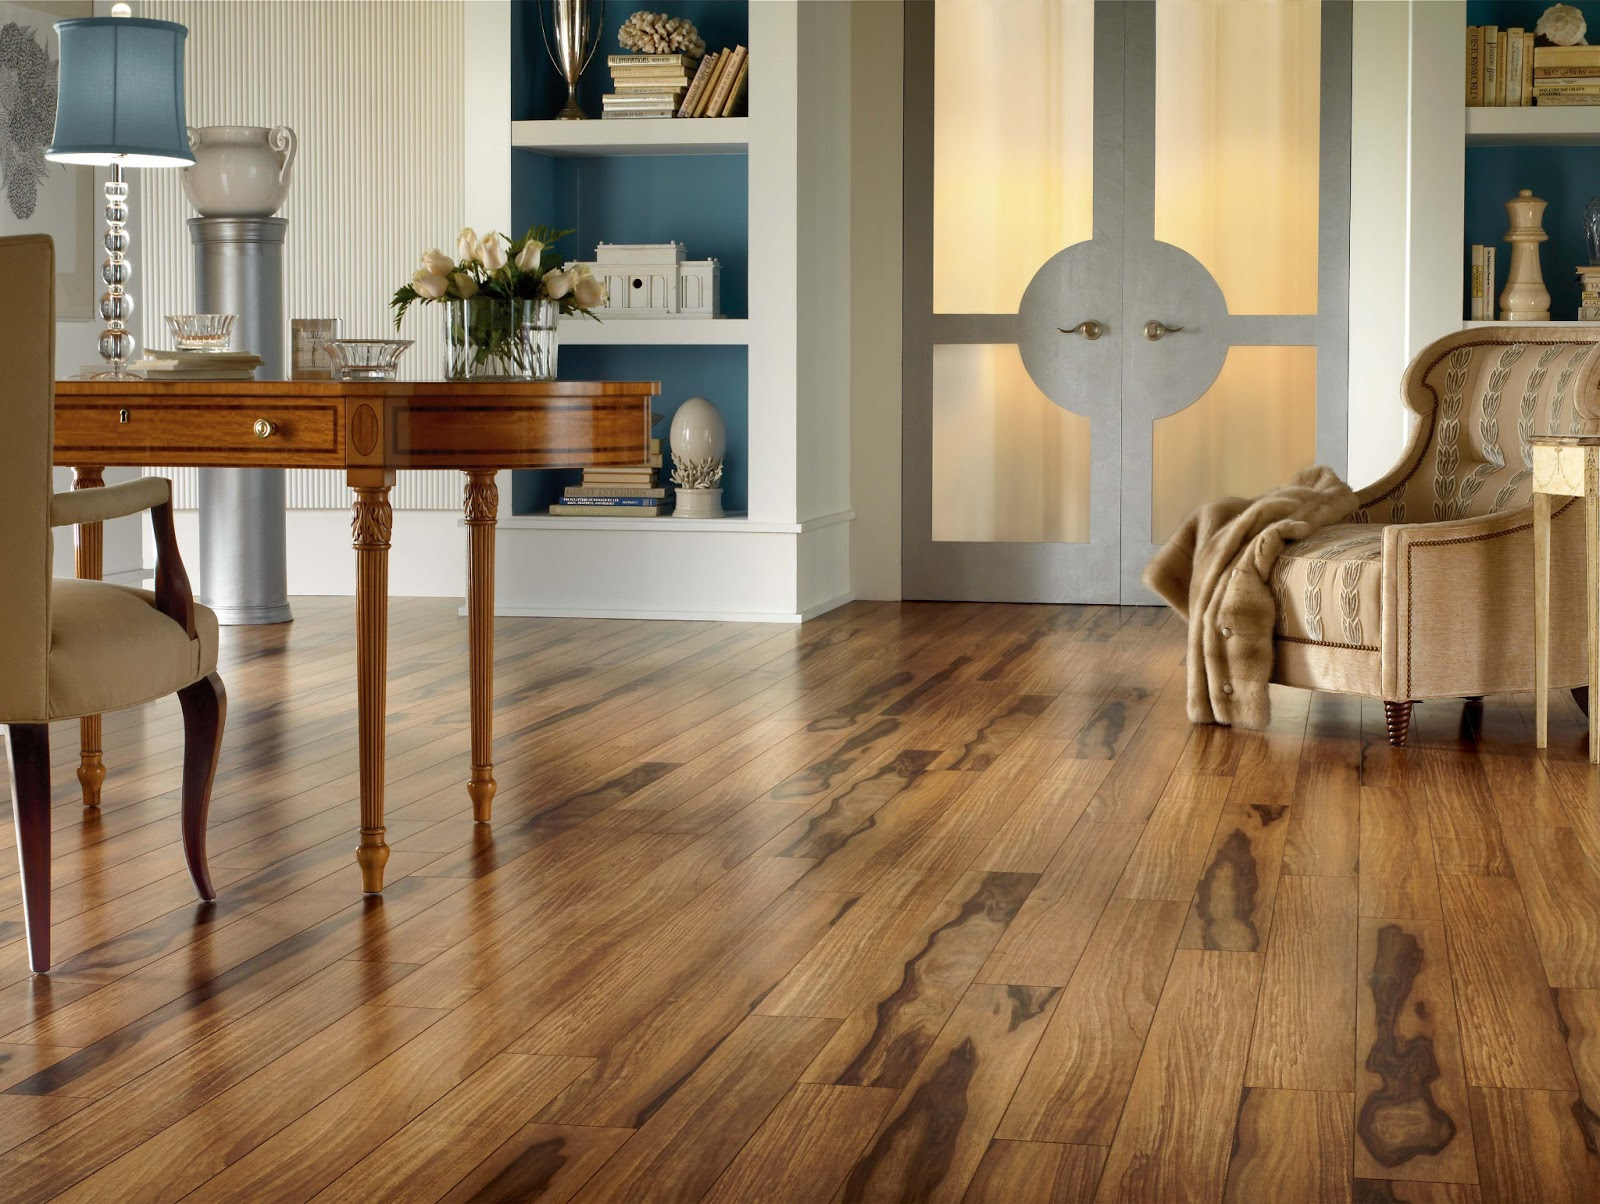 Wood or wood like which flooring should i choose dzine - Laminate or wood flooring ...